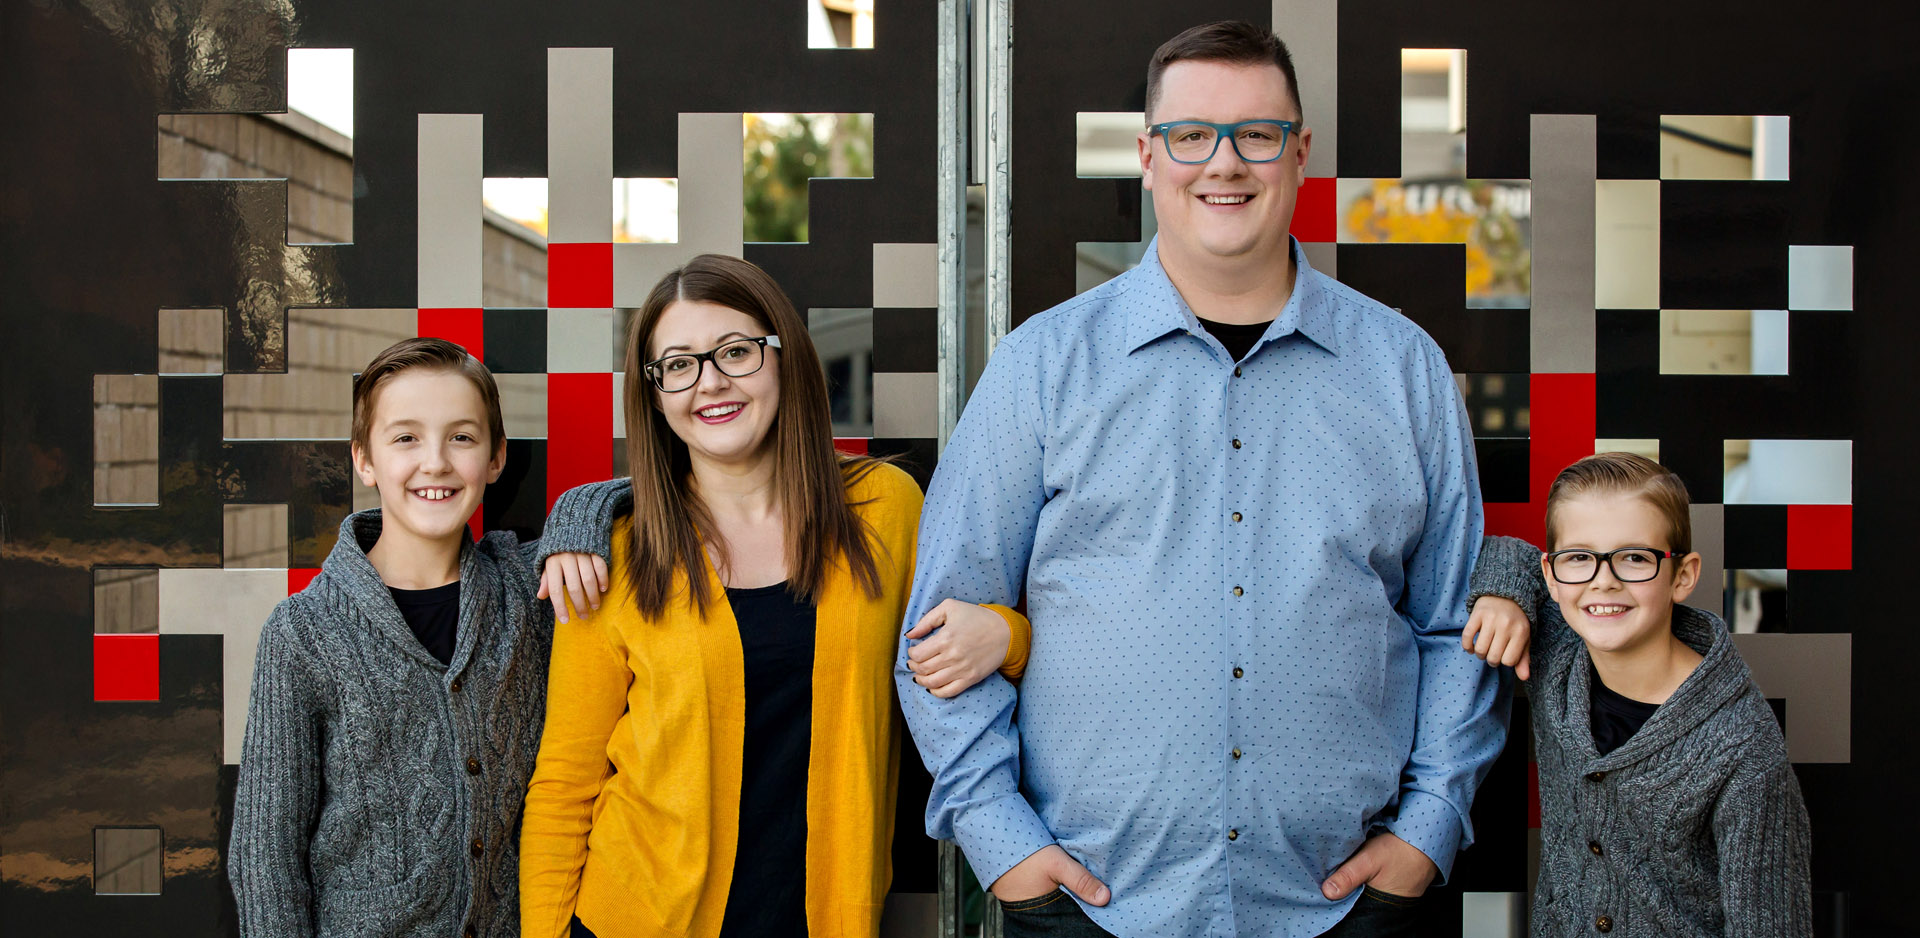 family standing in front of red pixel wall at Casa